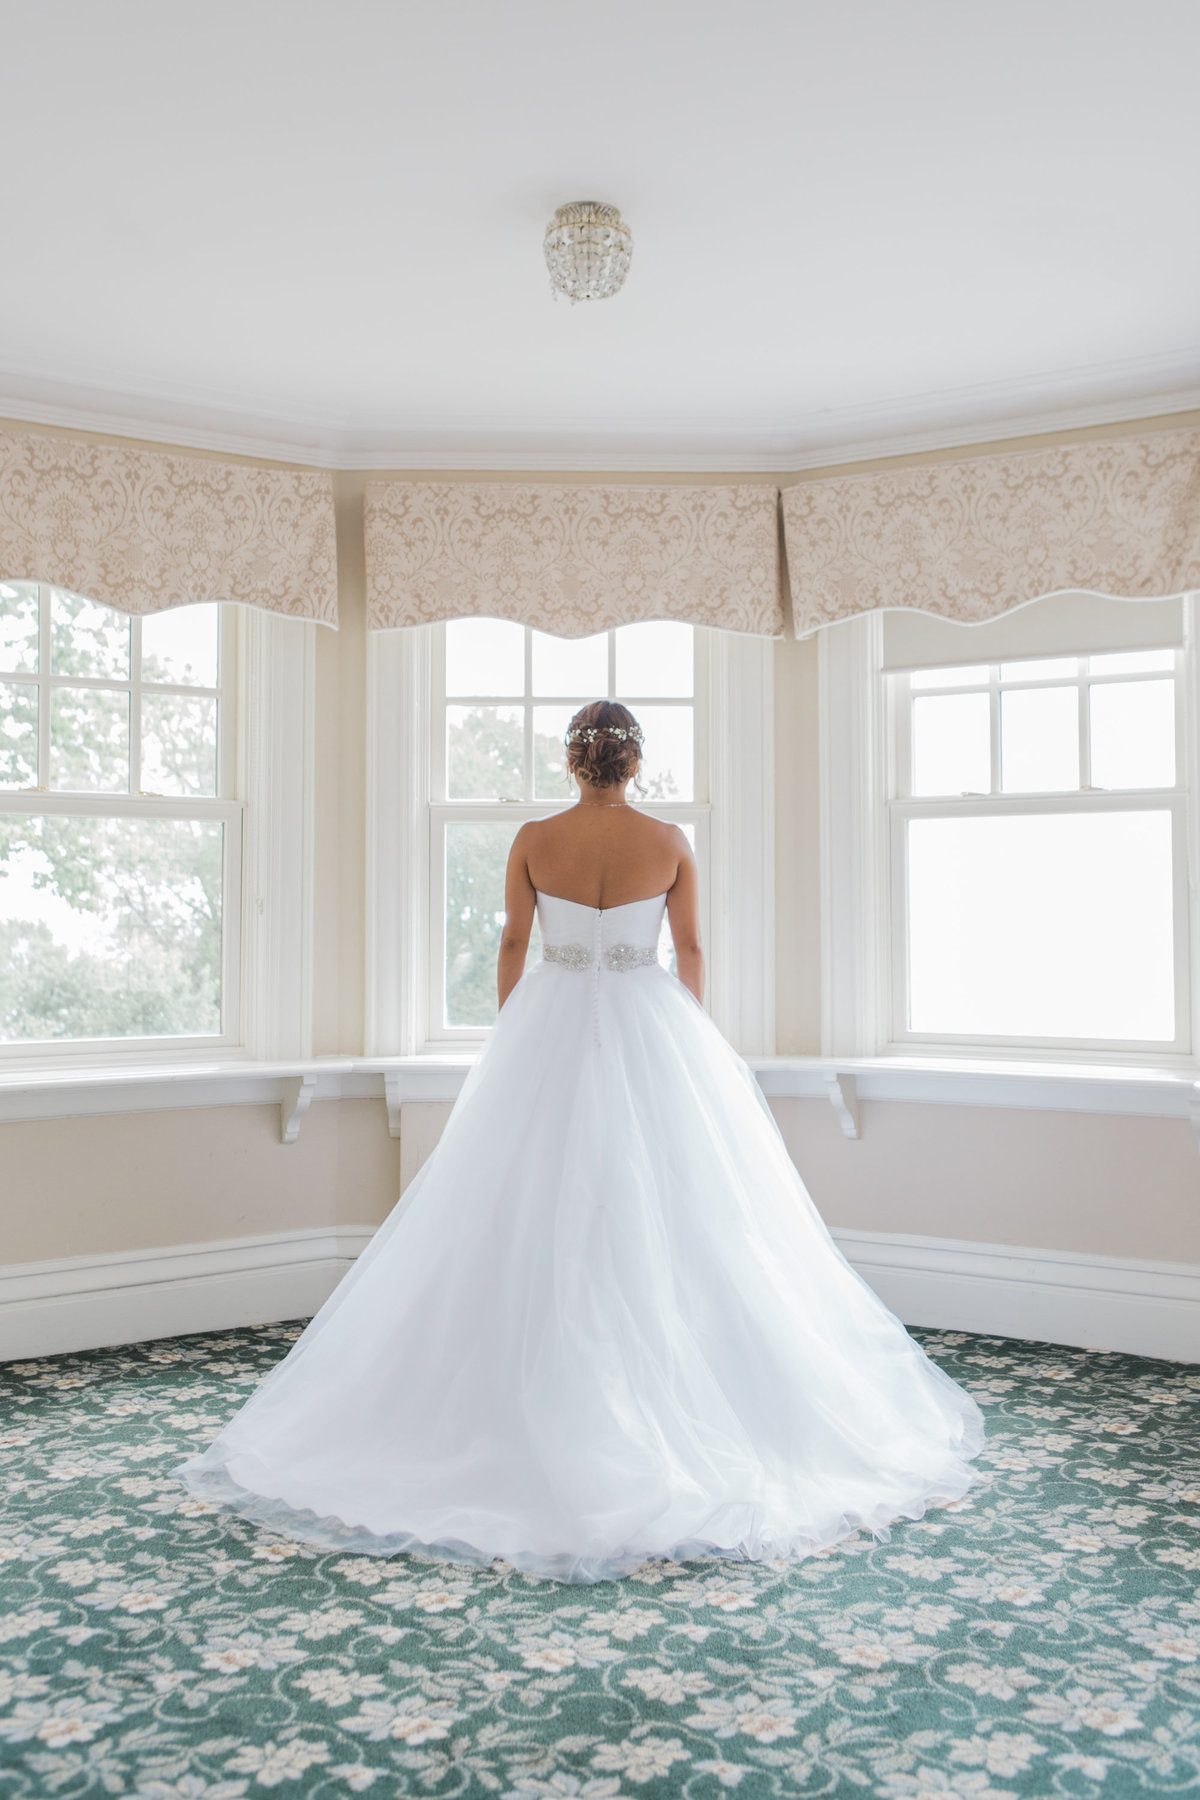 Burlington-wedding-photographer-bride-looking-out-window-at-paletta-mansion